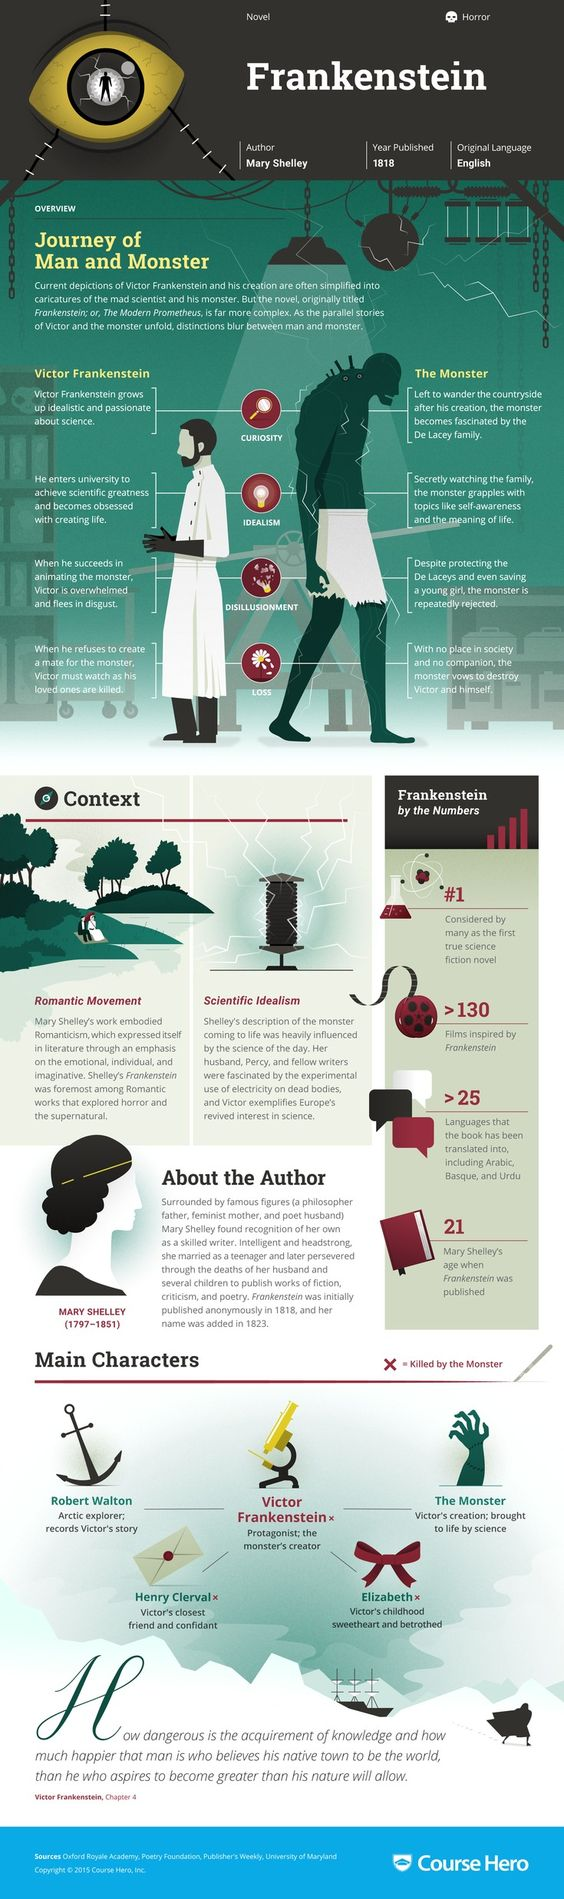 This 'Frankenstein' infographic from Course Hero is as awesome as it is helpful. Check it out!